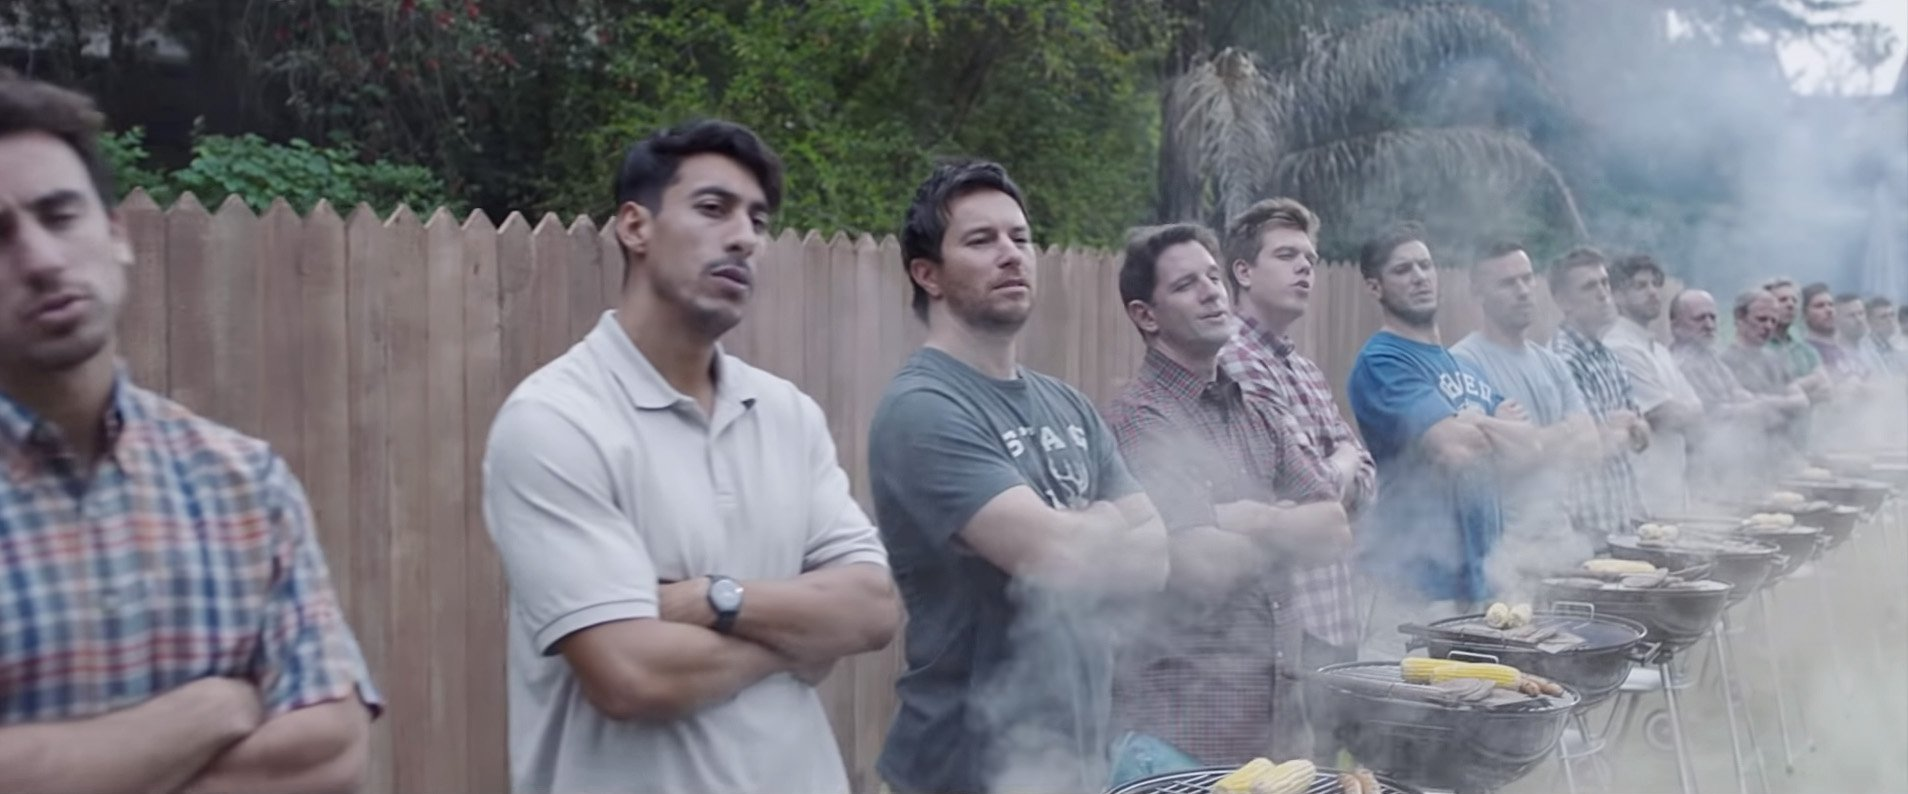 To the men too insecure to feel empowered by the Gillette advert – I'm sorry